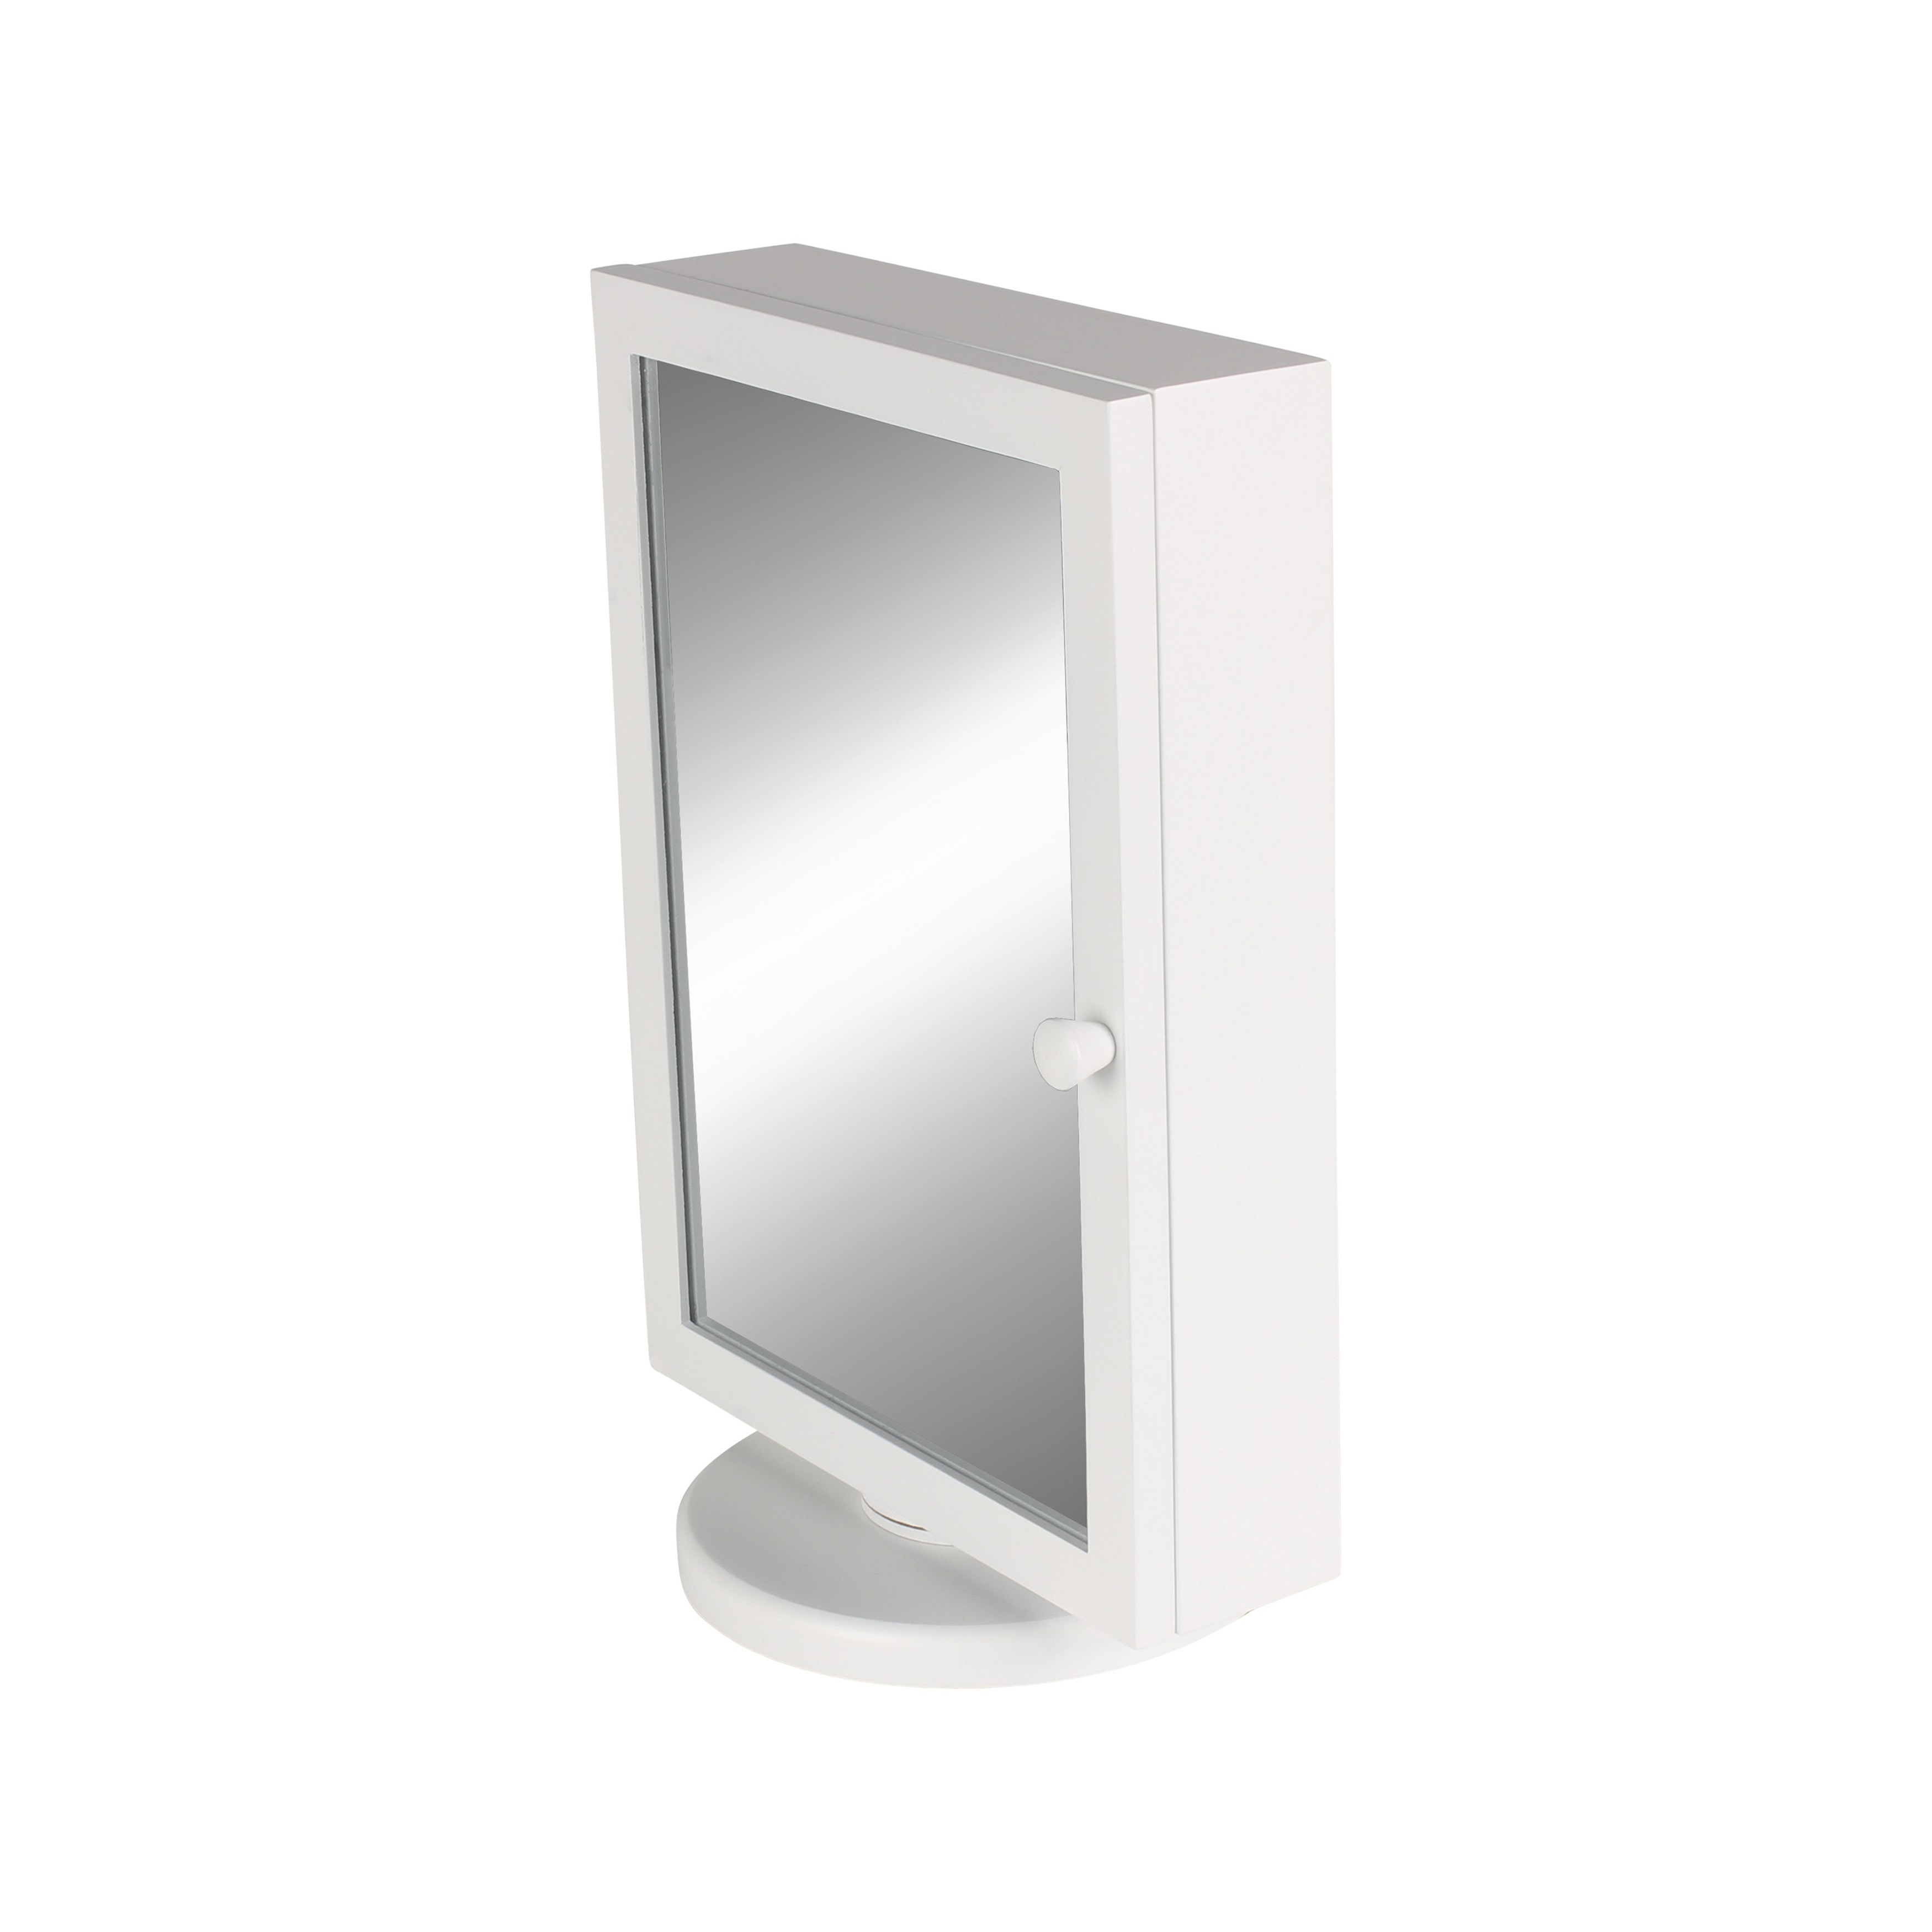 Vanity Organizer / White Justine Jewelry Armoire with Mirror Door and French Memo 0